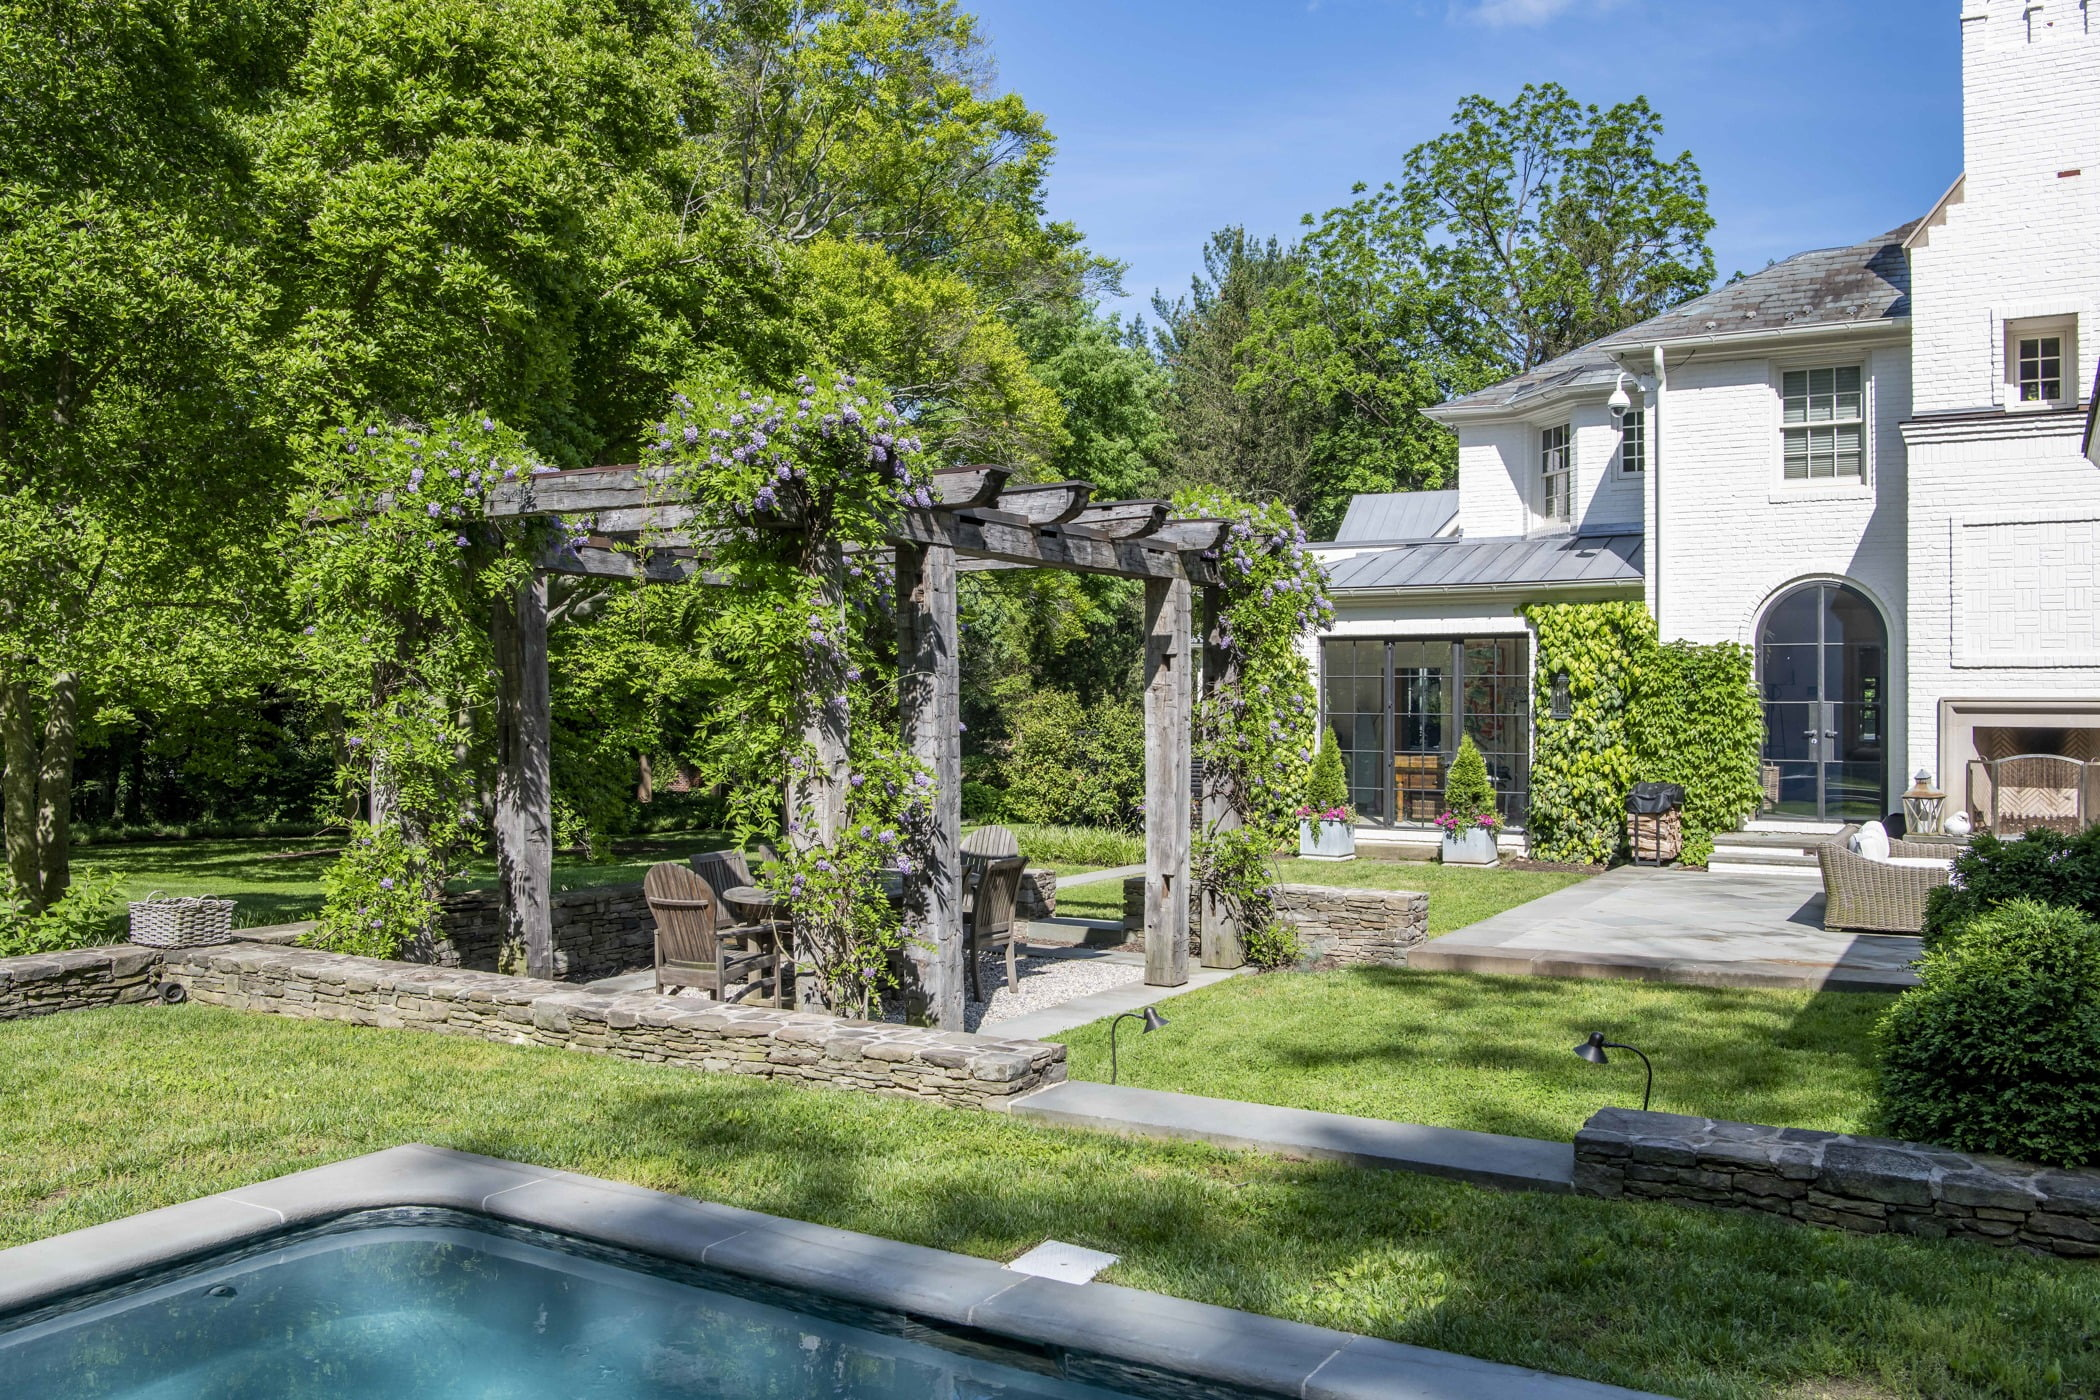 Ivy-covered wooden pergola, outdoor seating and dining area, and rest of backyard